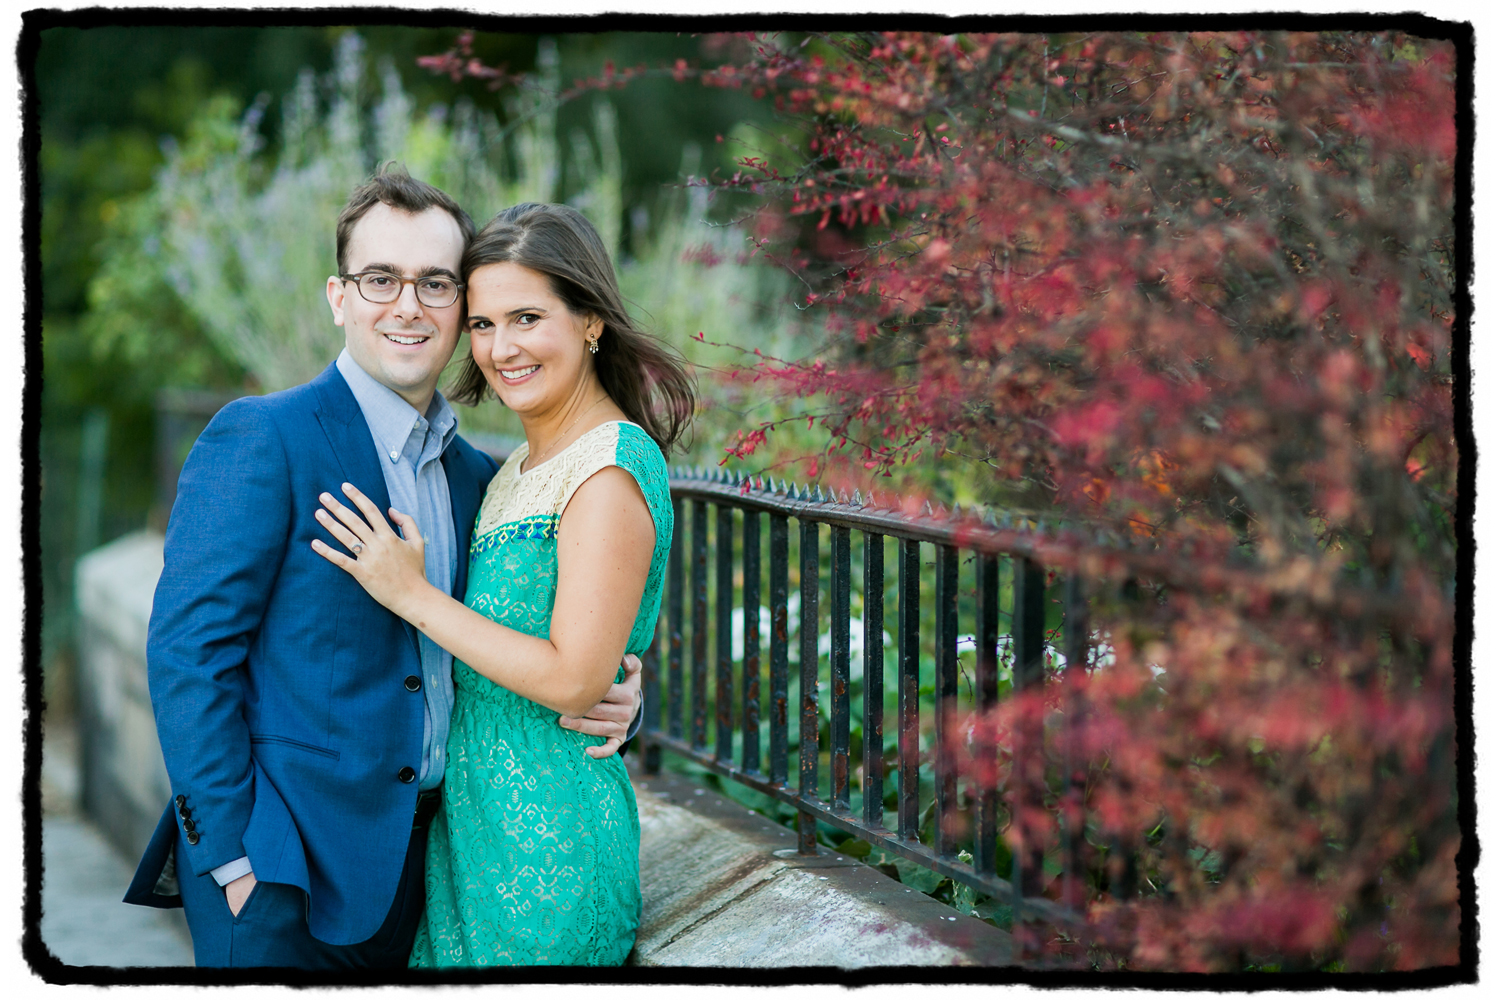 Engagement Portraits: Sarah & Jeff in a waterside park in Yorkville, Upper East Side.